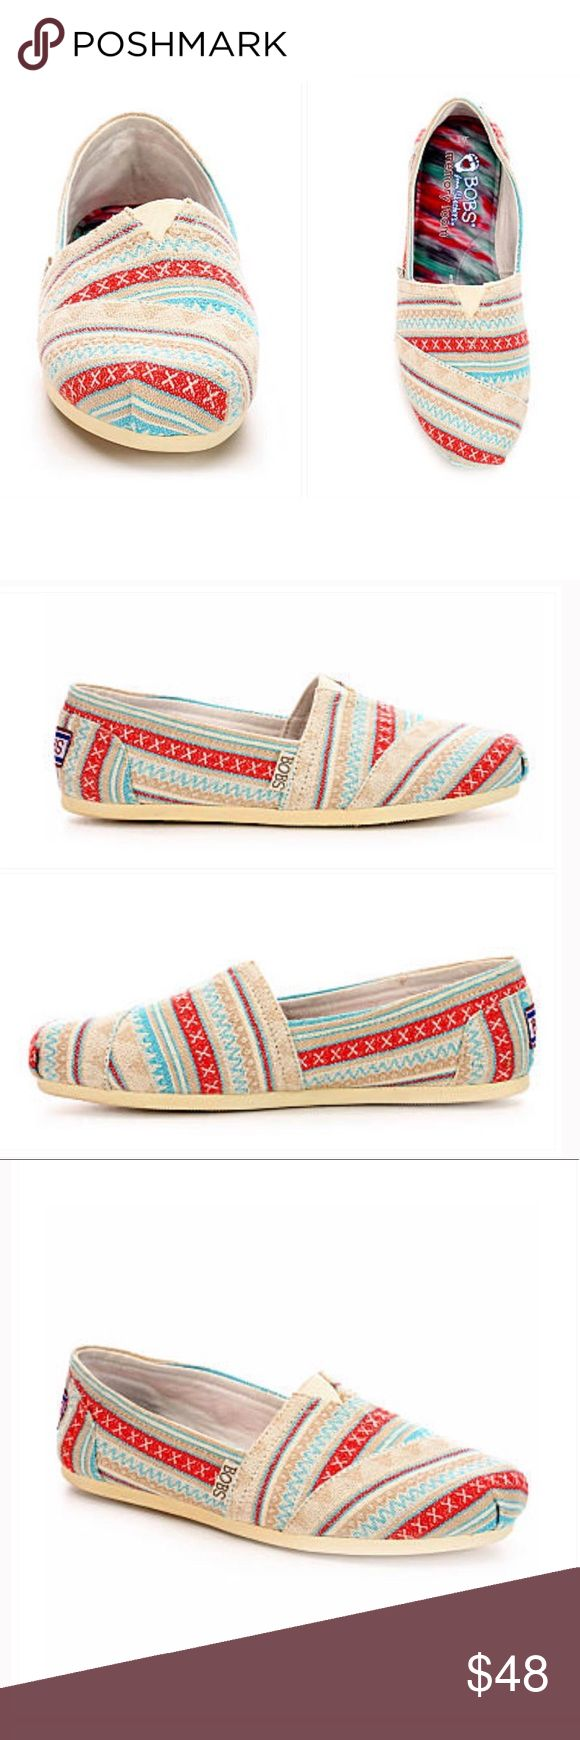 Skechers Bobs Slip-On Shoe Skechers Bobs Slip-On Shoe  New in box.  Boho and super soft, these slip-on shoes from Skechers deliver both comfort and style all in one. A textured fabric upper features a printed design with pleated toe and Memory Foam cushioned insole. It includes a shock absorbing midsole and flexible rubber outsole for a steady step. Fabric upper Printed and textured Toe pleat detail Memory Foam cushioned insole Shock absorbing midsole Flexible rubber traction outsole 🌼…